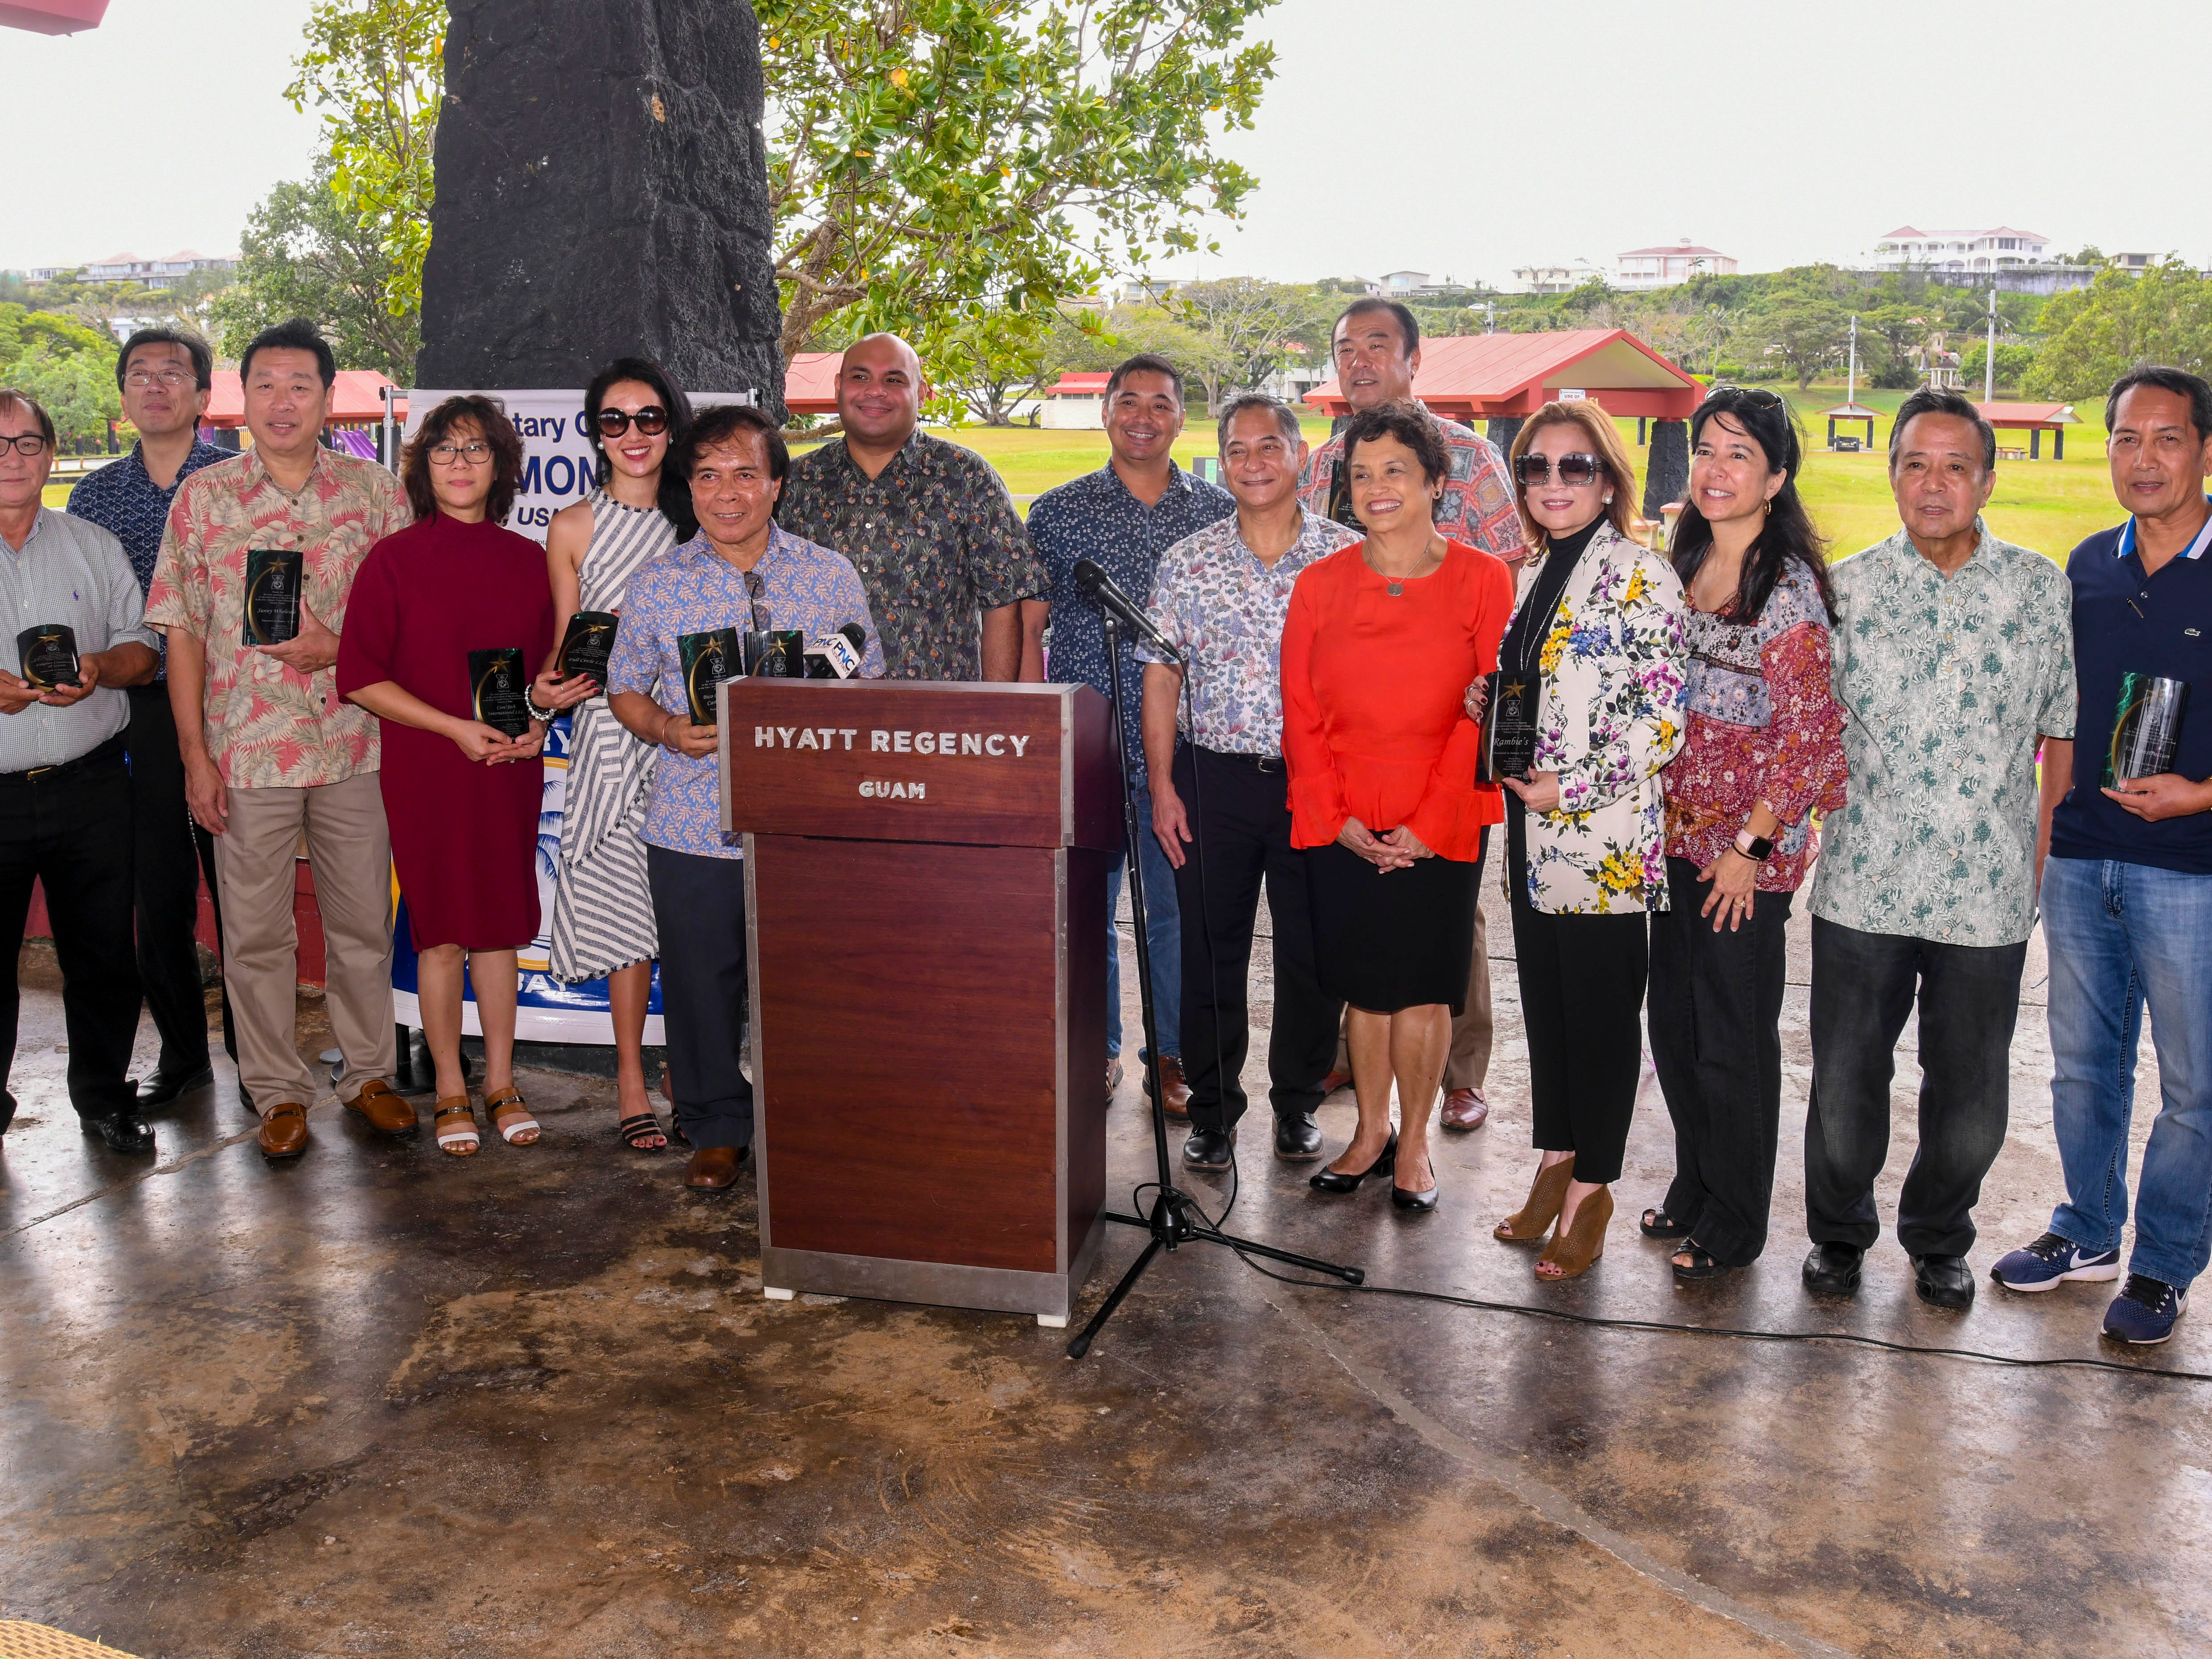 Local businesses are recognized for their contributions in the Rotary Club of Tumon Bay's Adopt-a-Shelter project during a unveiling ceremony at the Gov. Joseph Flores Memorial Park in Tumon on Friday, Jan. 18, 2019. The contributors gathered for a photo with Gov. Lou Leon Guerrero, Lt. Gov. Josh Tenorio and club Rotarians.